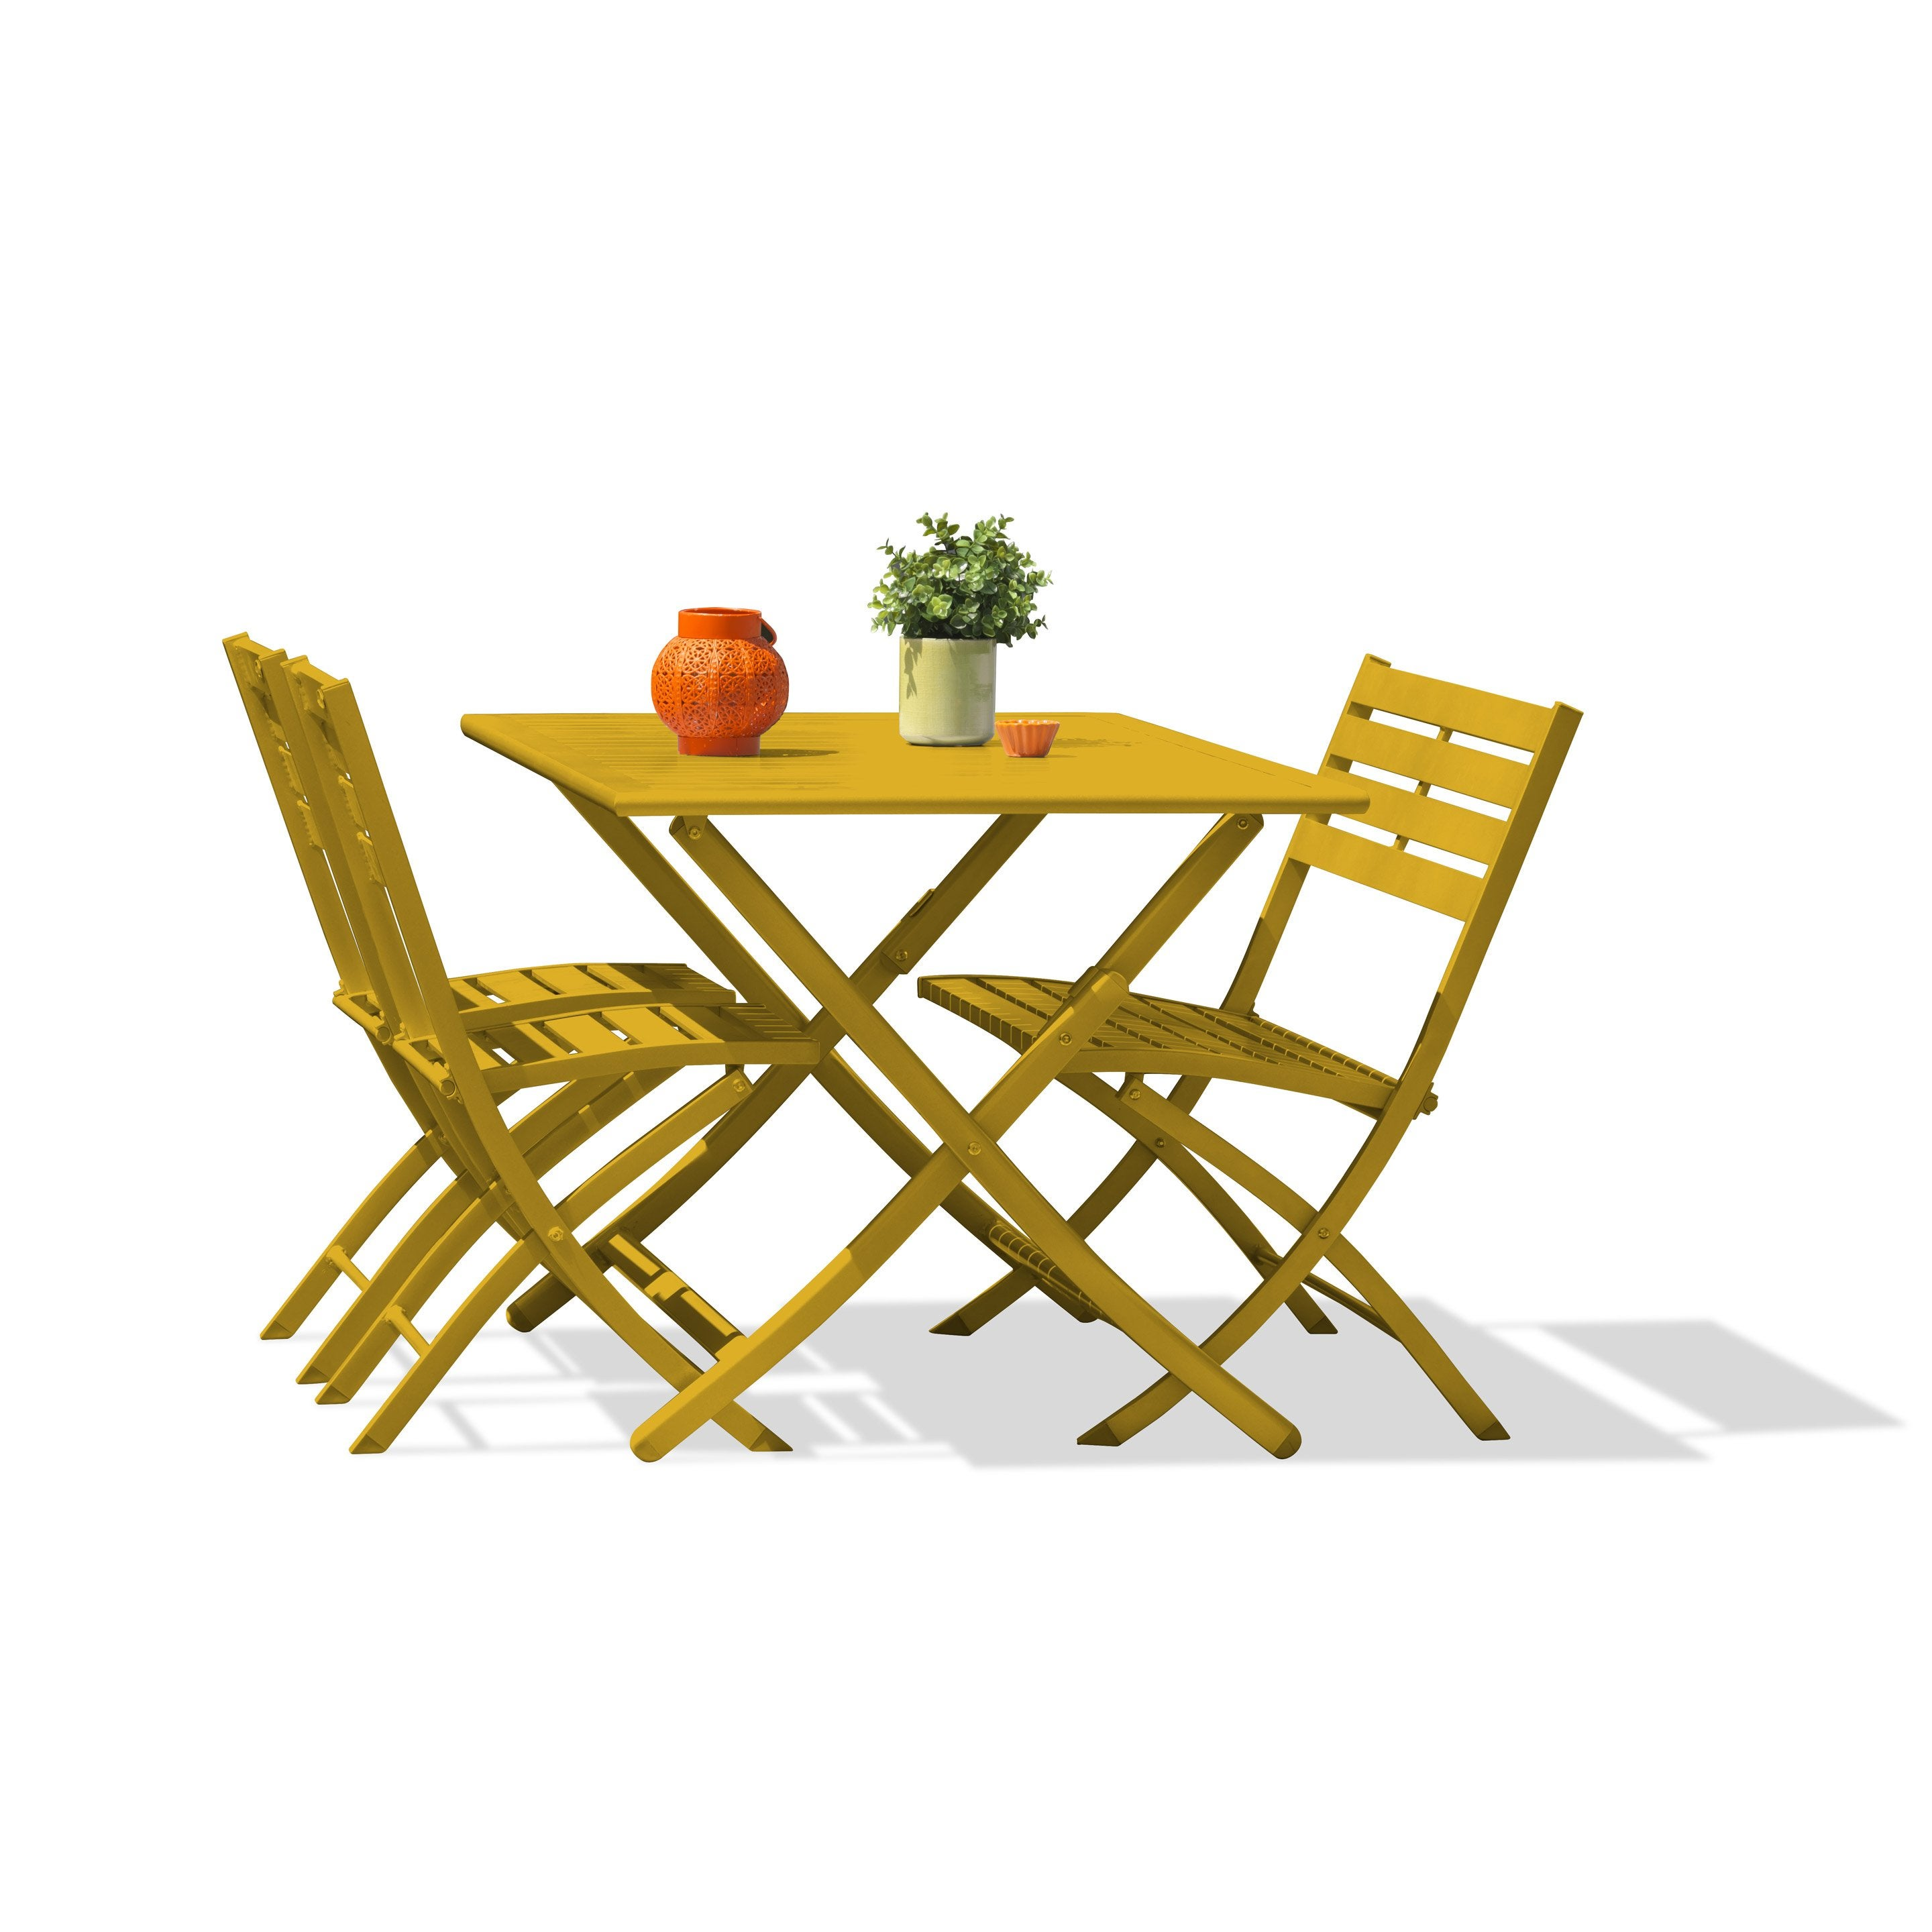 De Rectangulaire 4 Table Marius Moutarde Repas Personnes Jardin I6yvf7Ybg